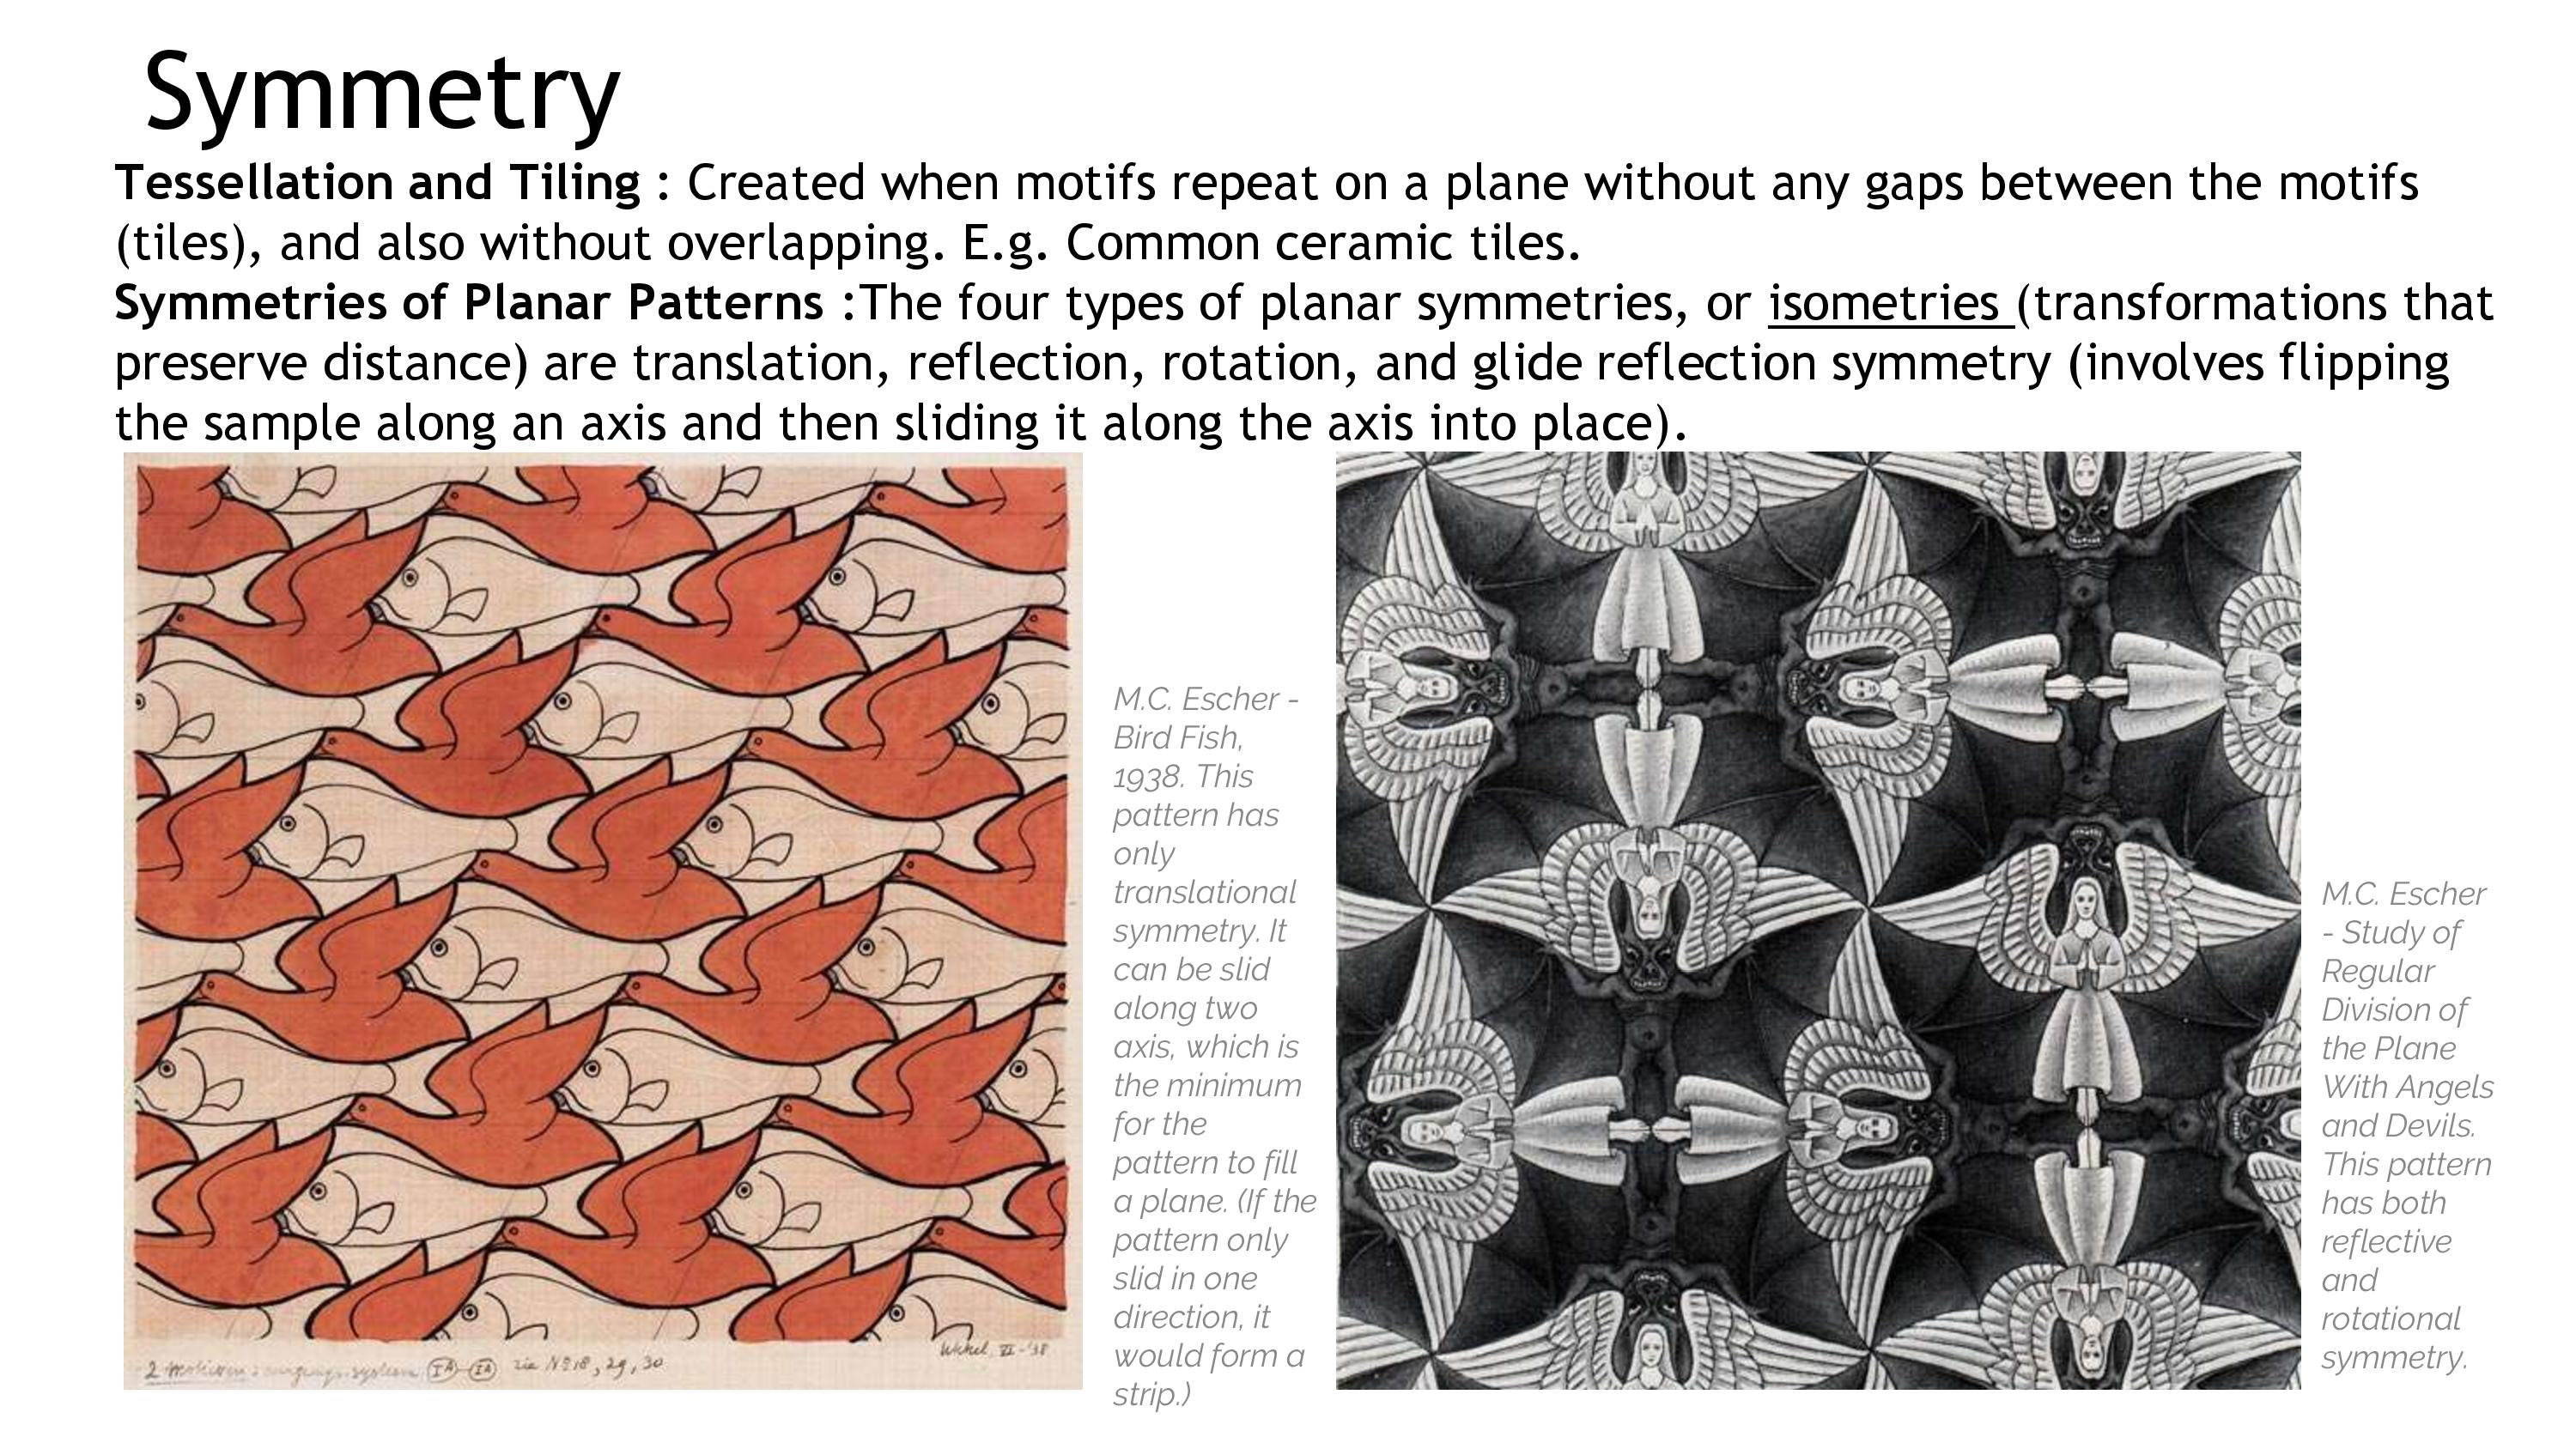 harmony-pattern-size-scale-proportion-page-044